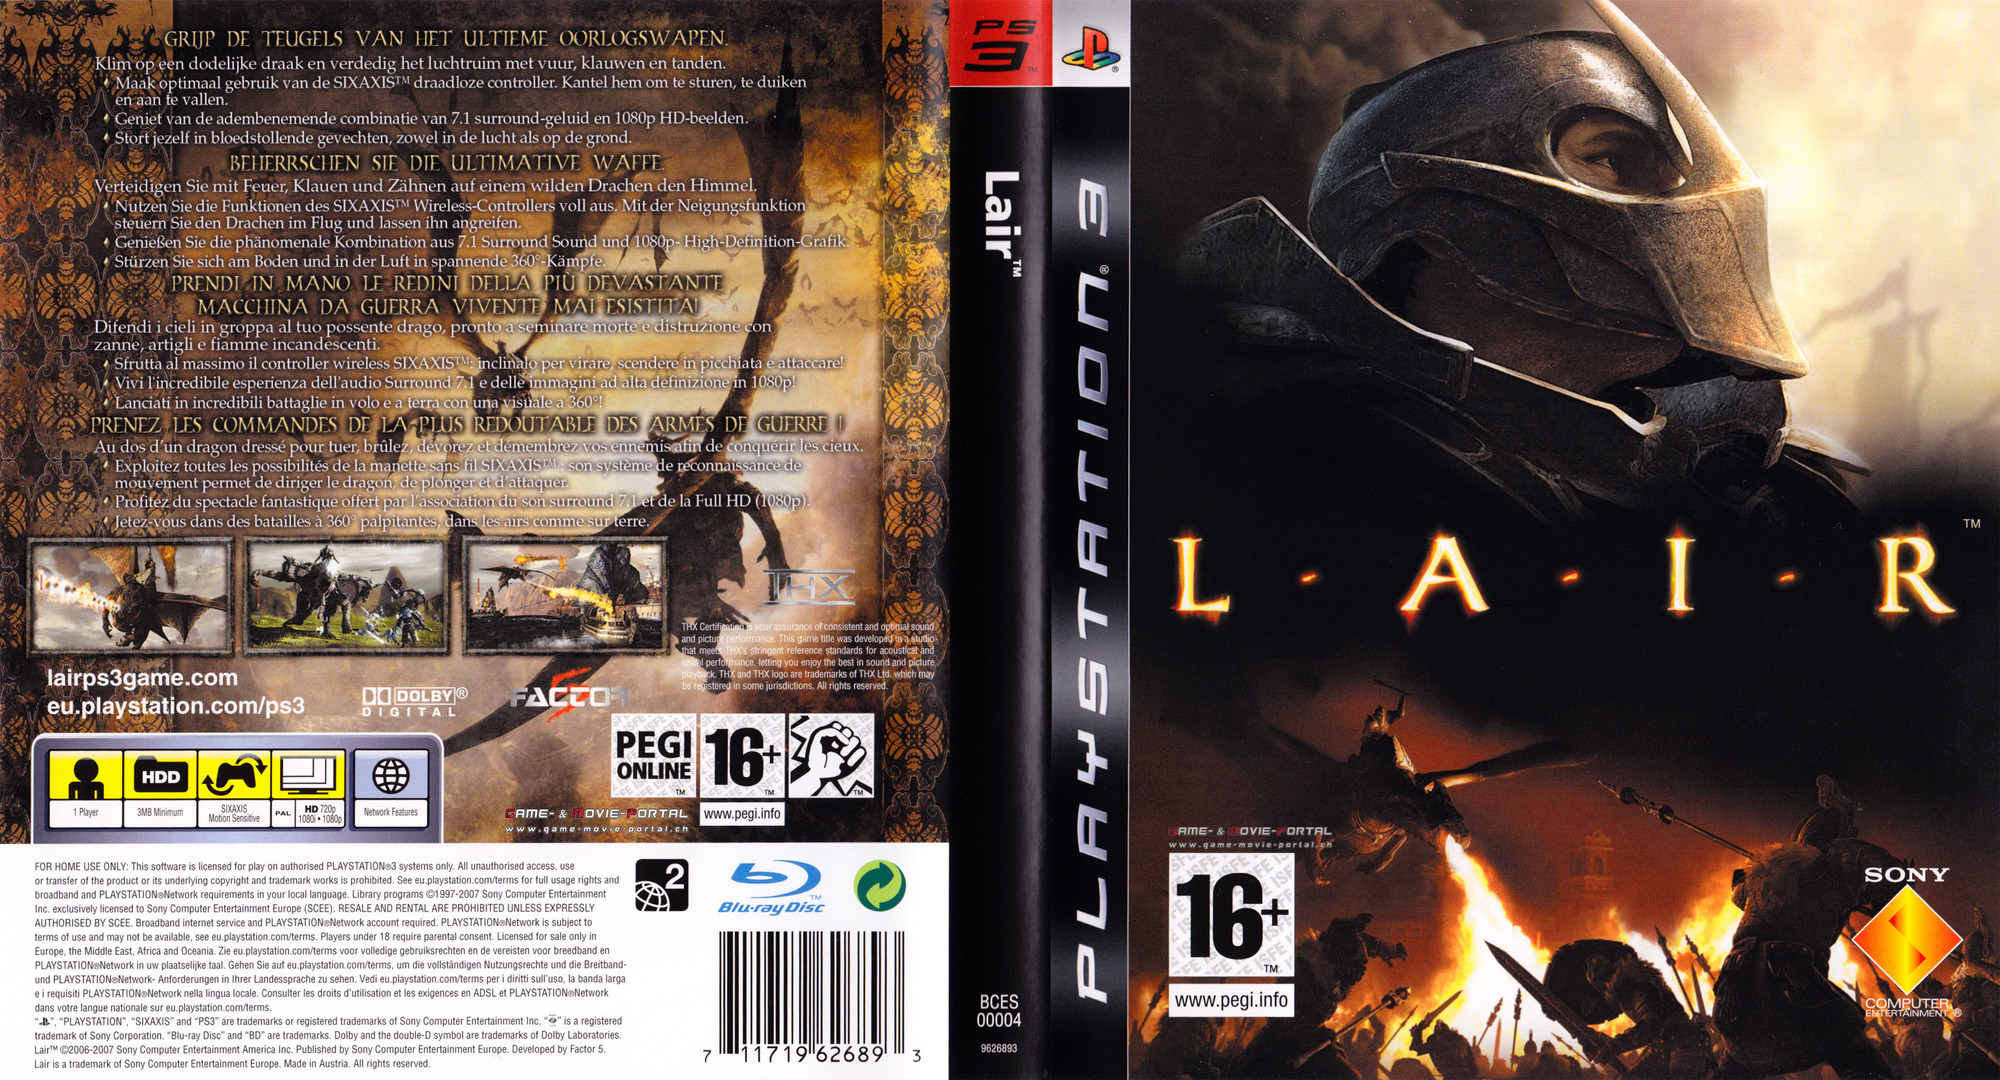 PS3 coverfullHQ2 (BCES00004)